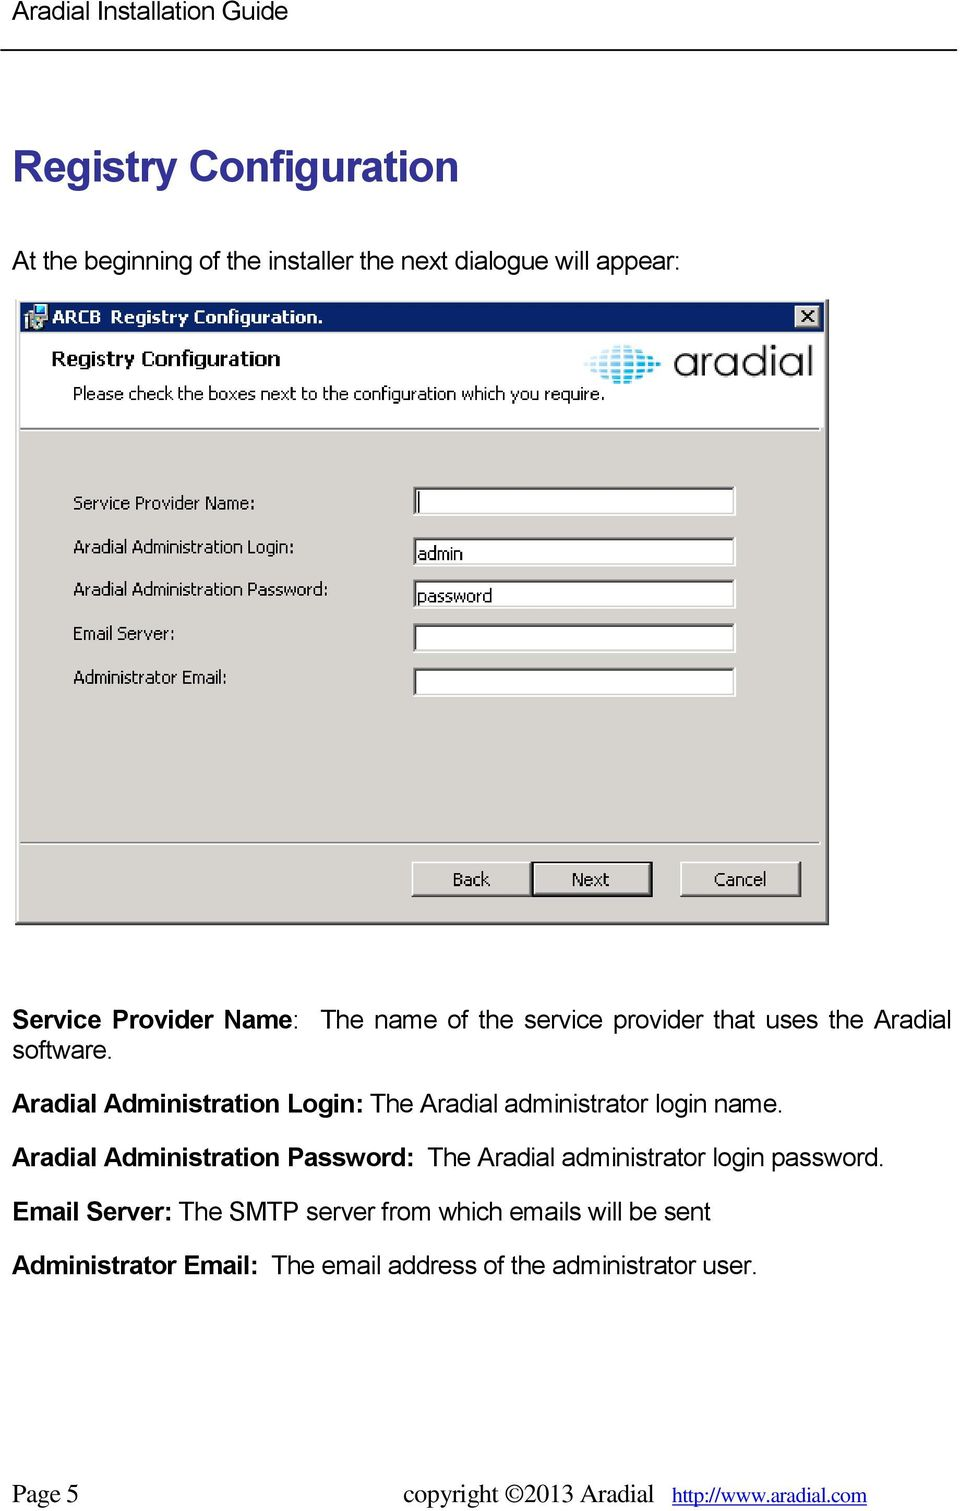 Aradial Administration Login: The Aradial administrator login name.